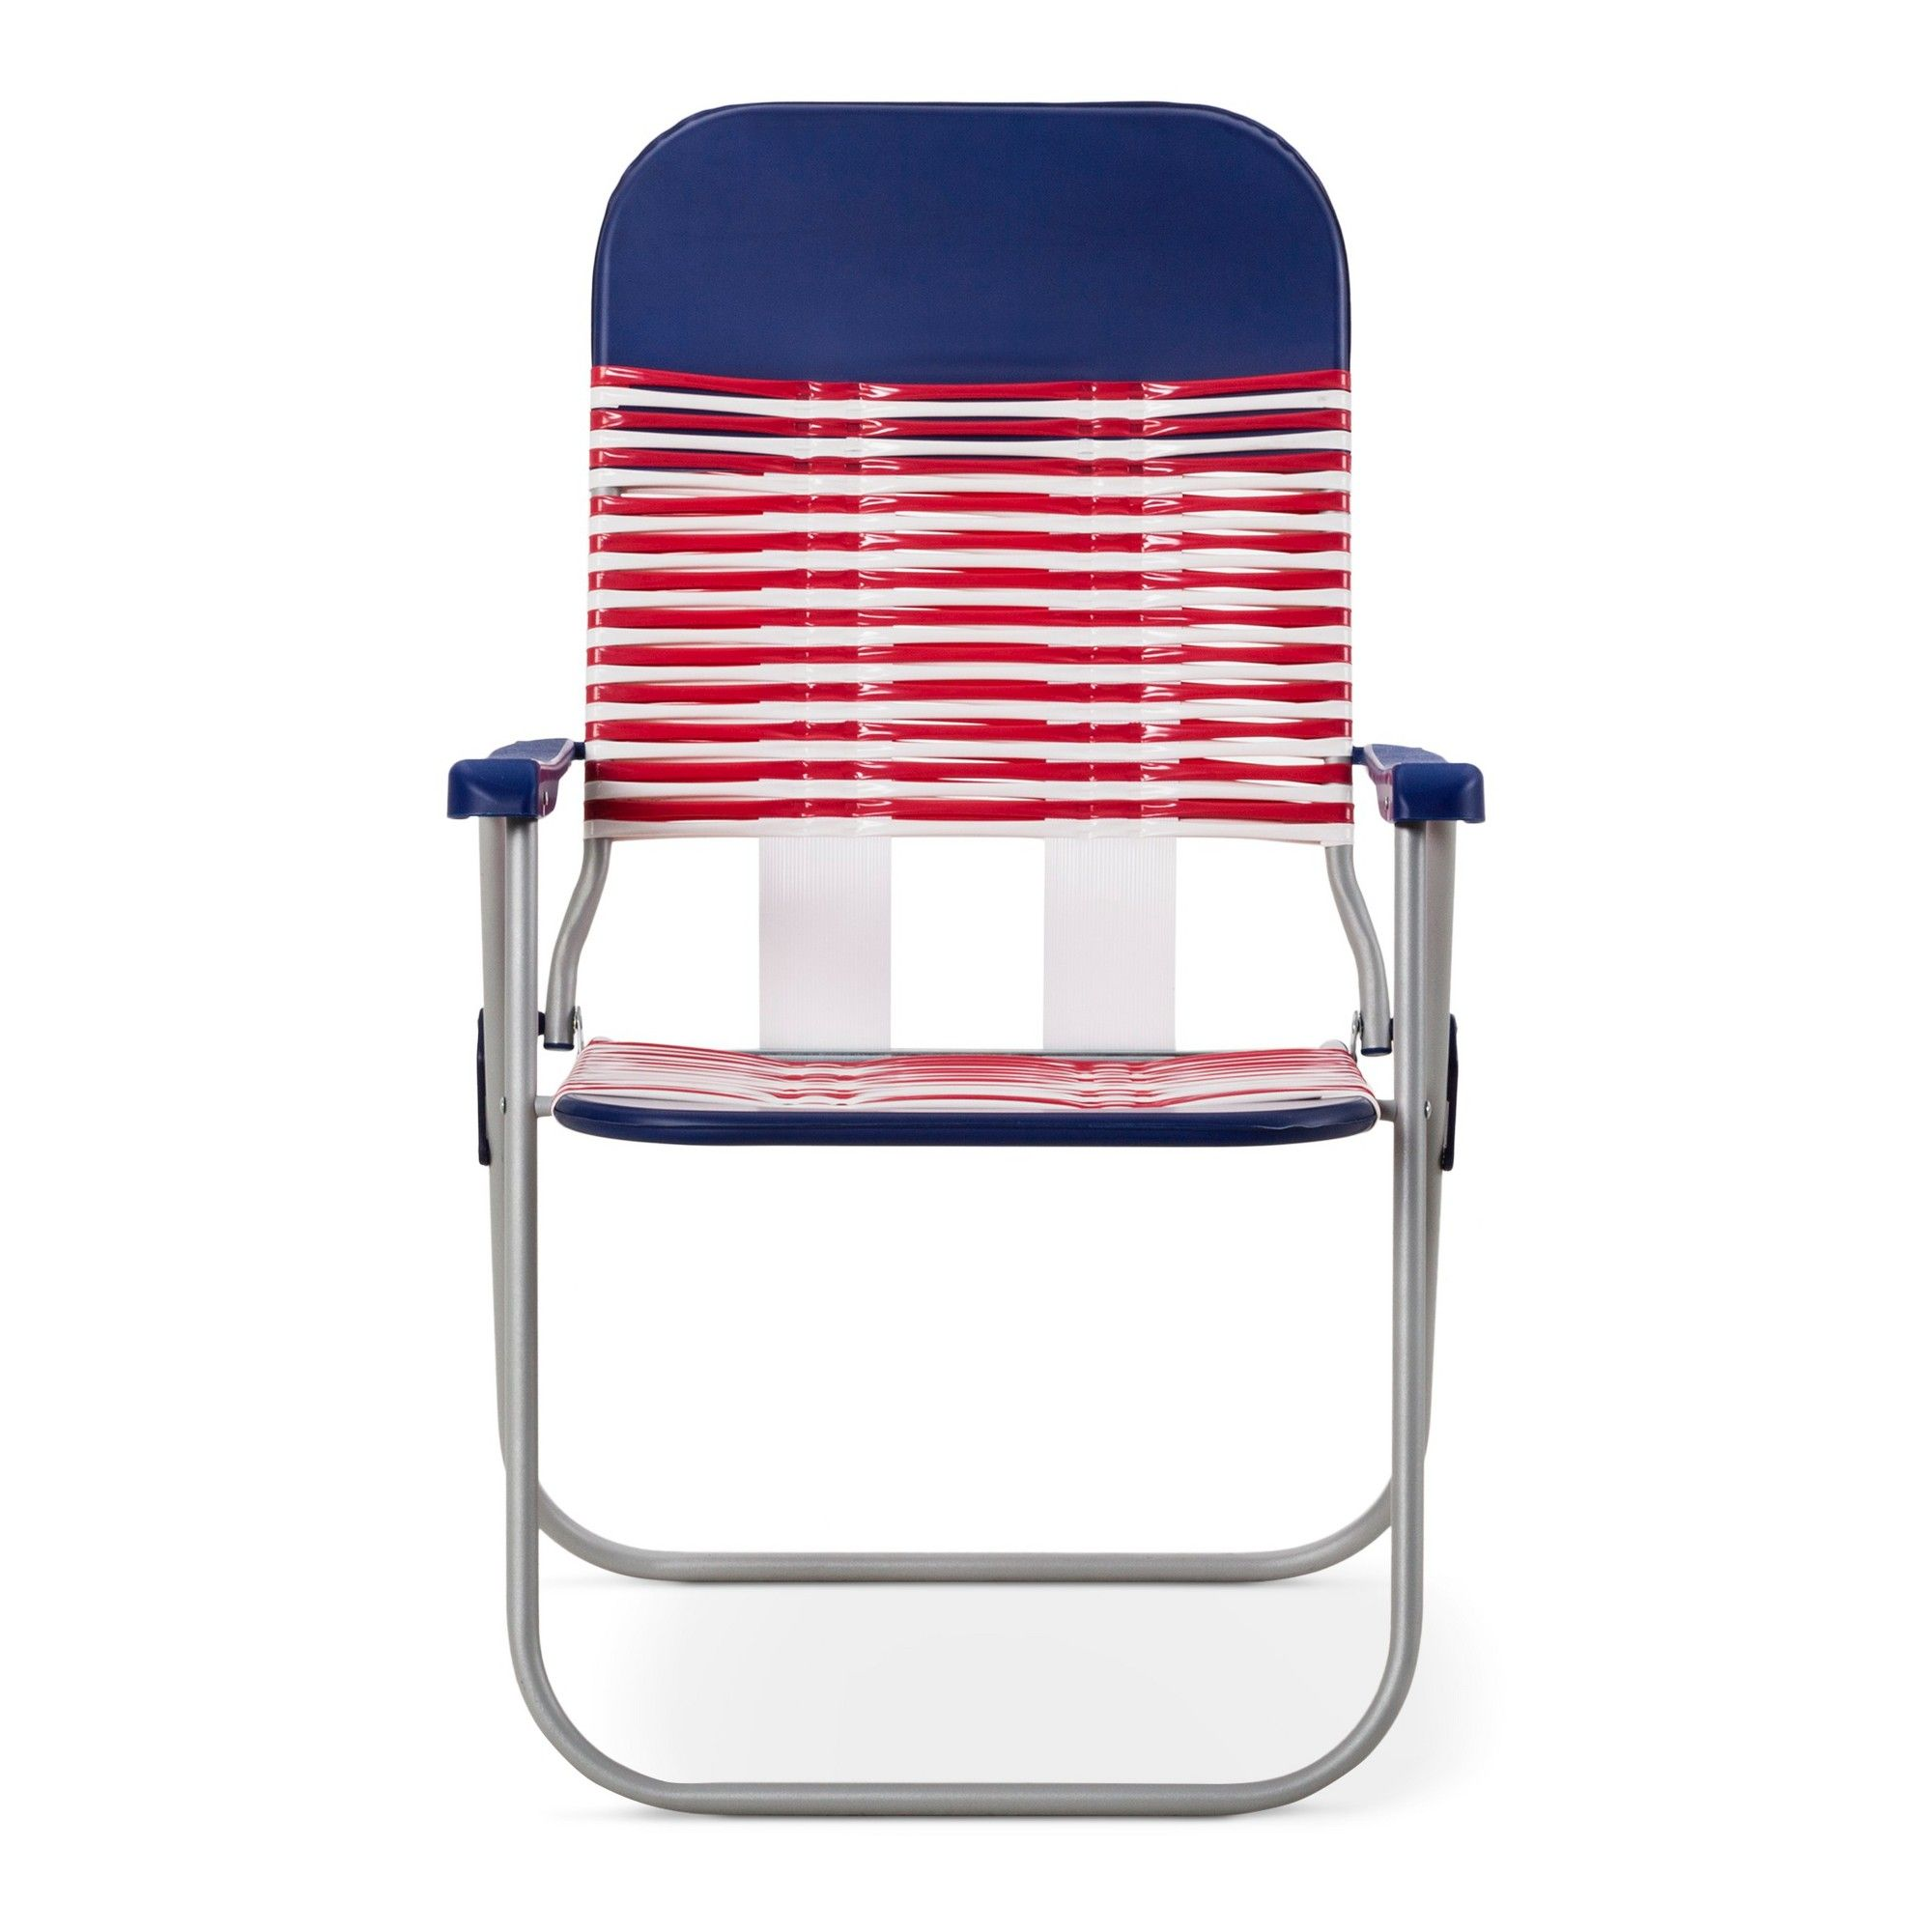 Astounding Jelly Folding Beach Chair Red White Blue Room Gmtry Best Dining Table And Chair Ideas Images Gmtryco